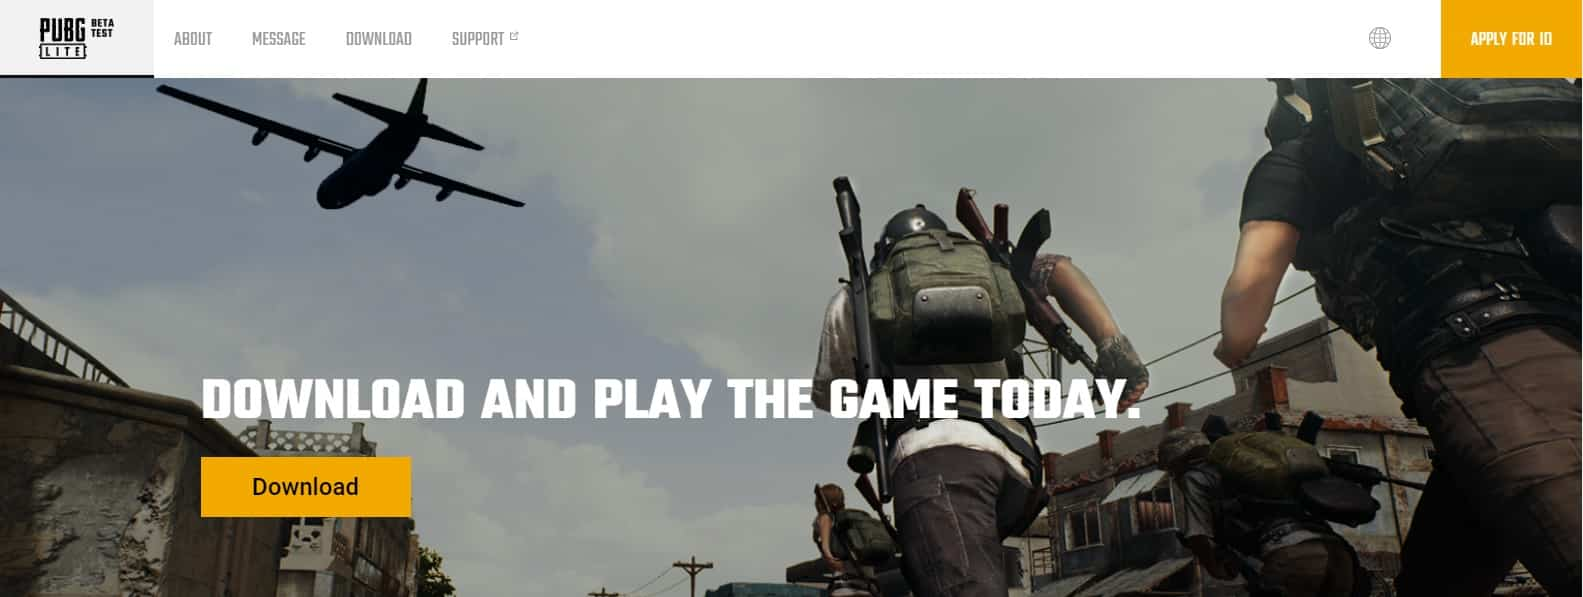 Pubg Lite Hd: Download And Install PUBG Lite For PC In Any Country For Free